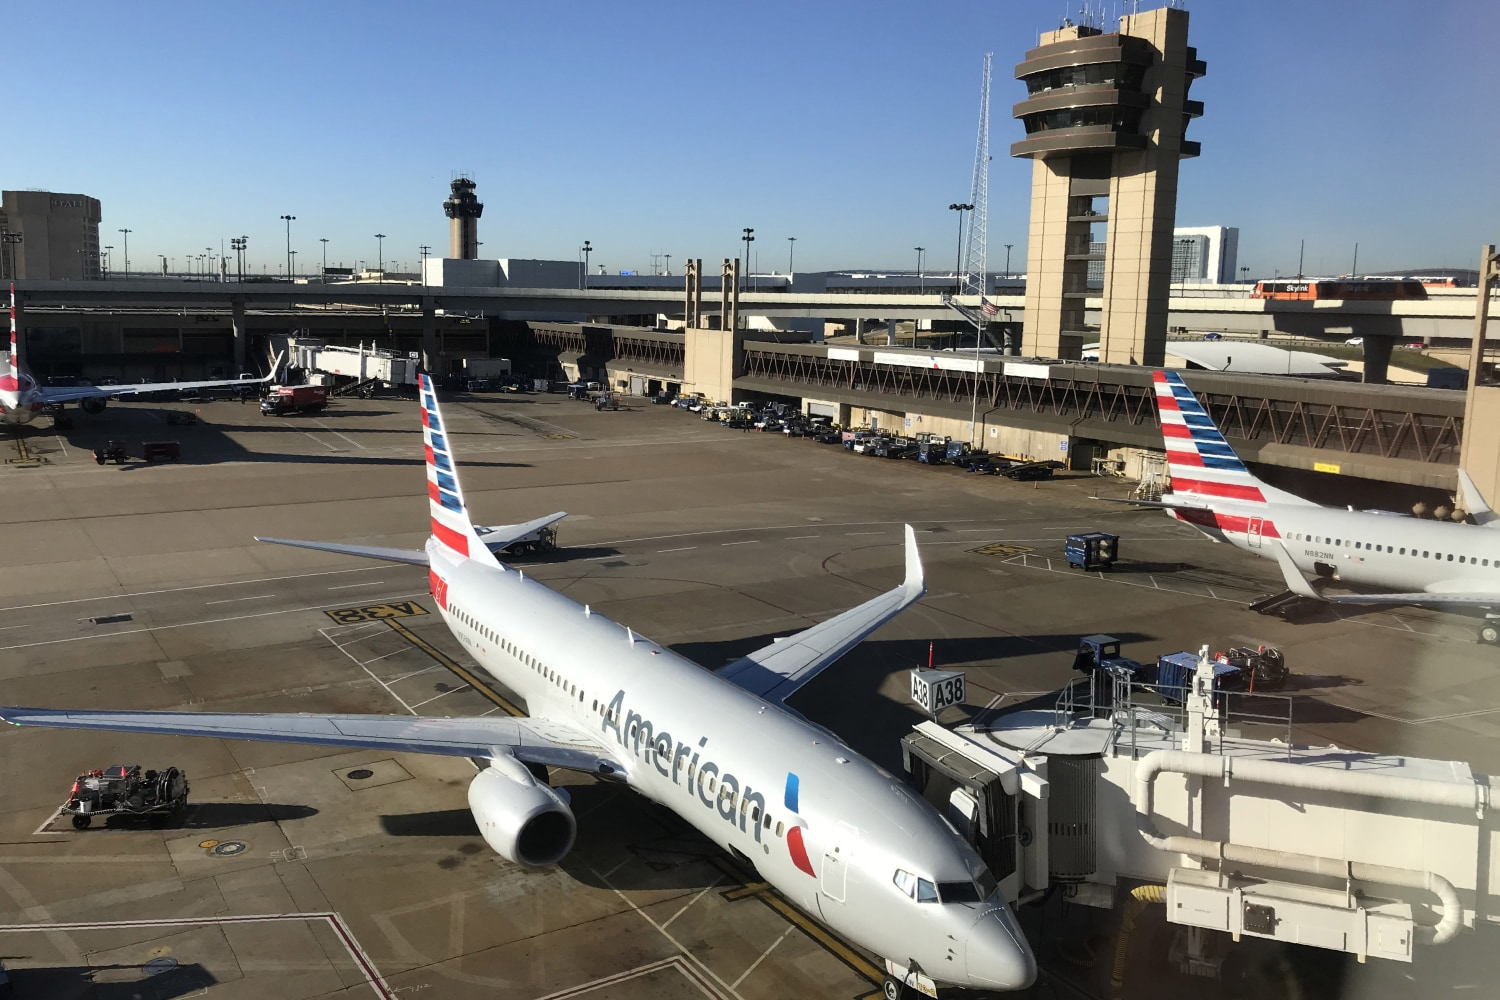 American Airlines pilots agree to fly holiday flights after scheduling glitch